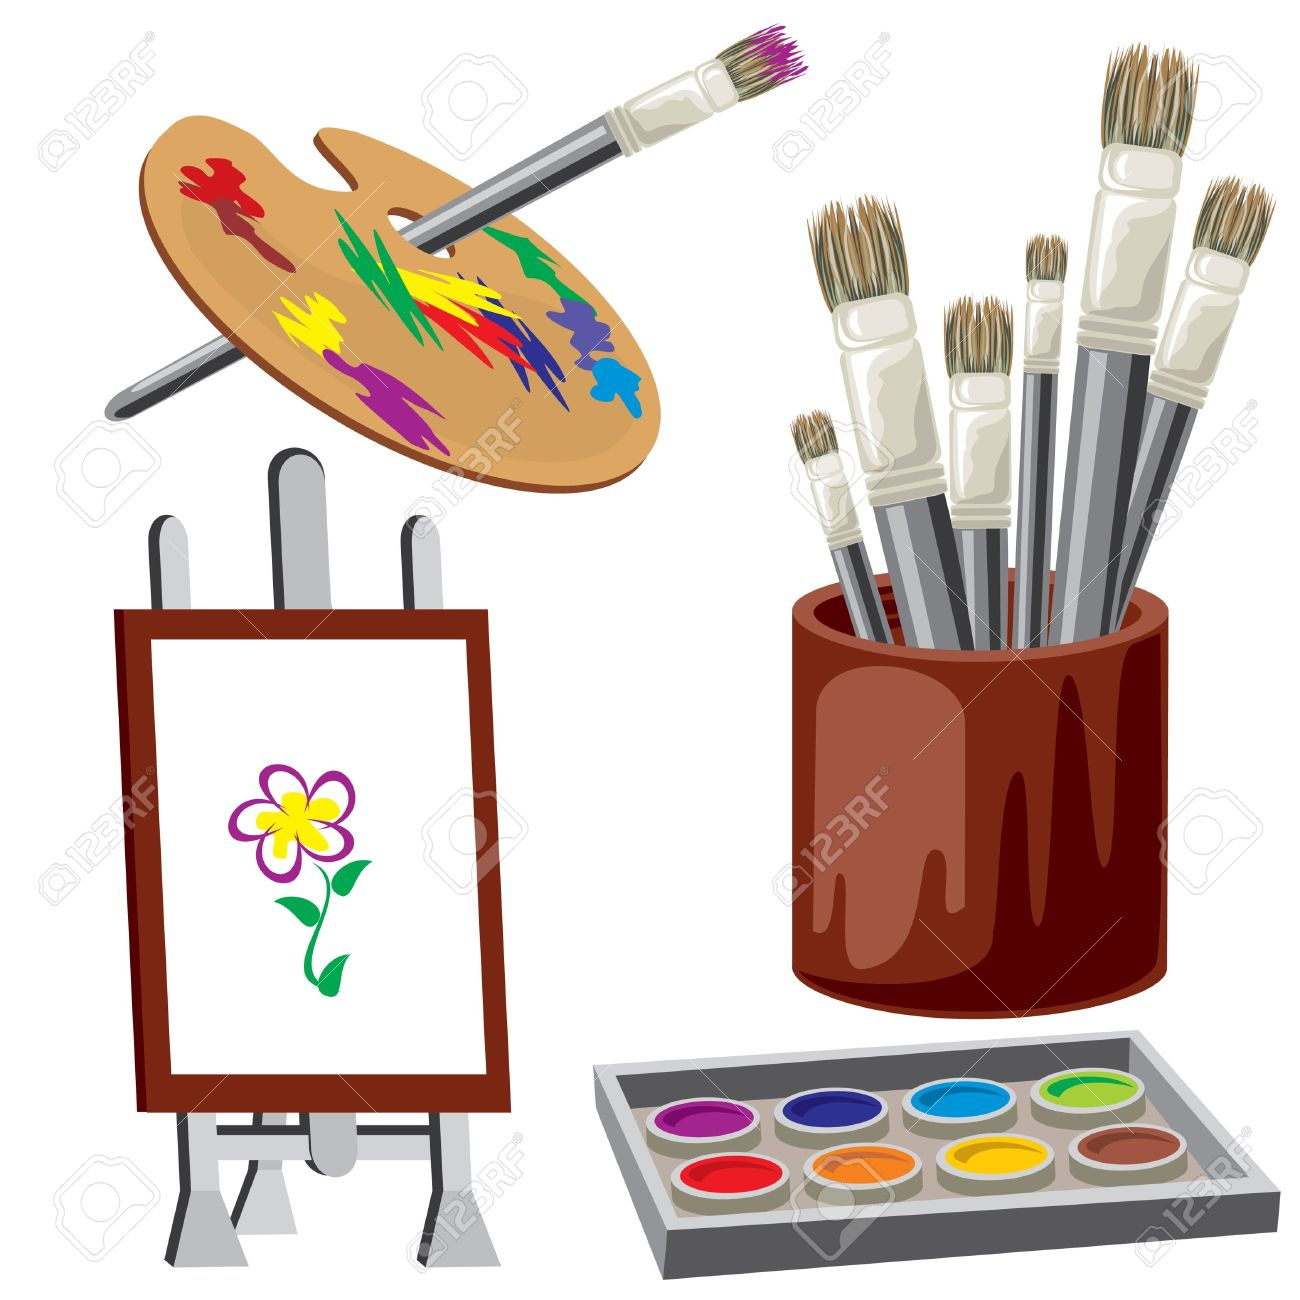 Arts and crafts clipart free download best arts and for Arts and crafts classes nyc